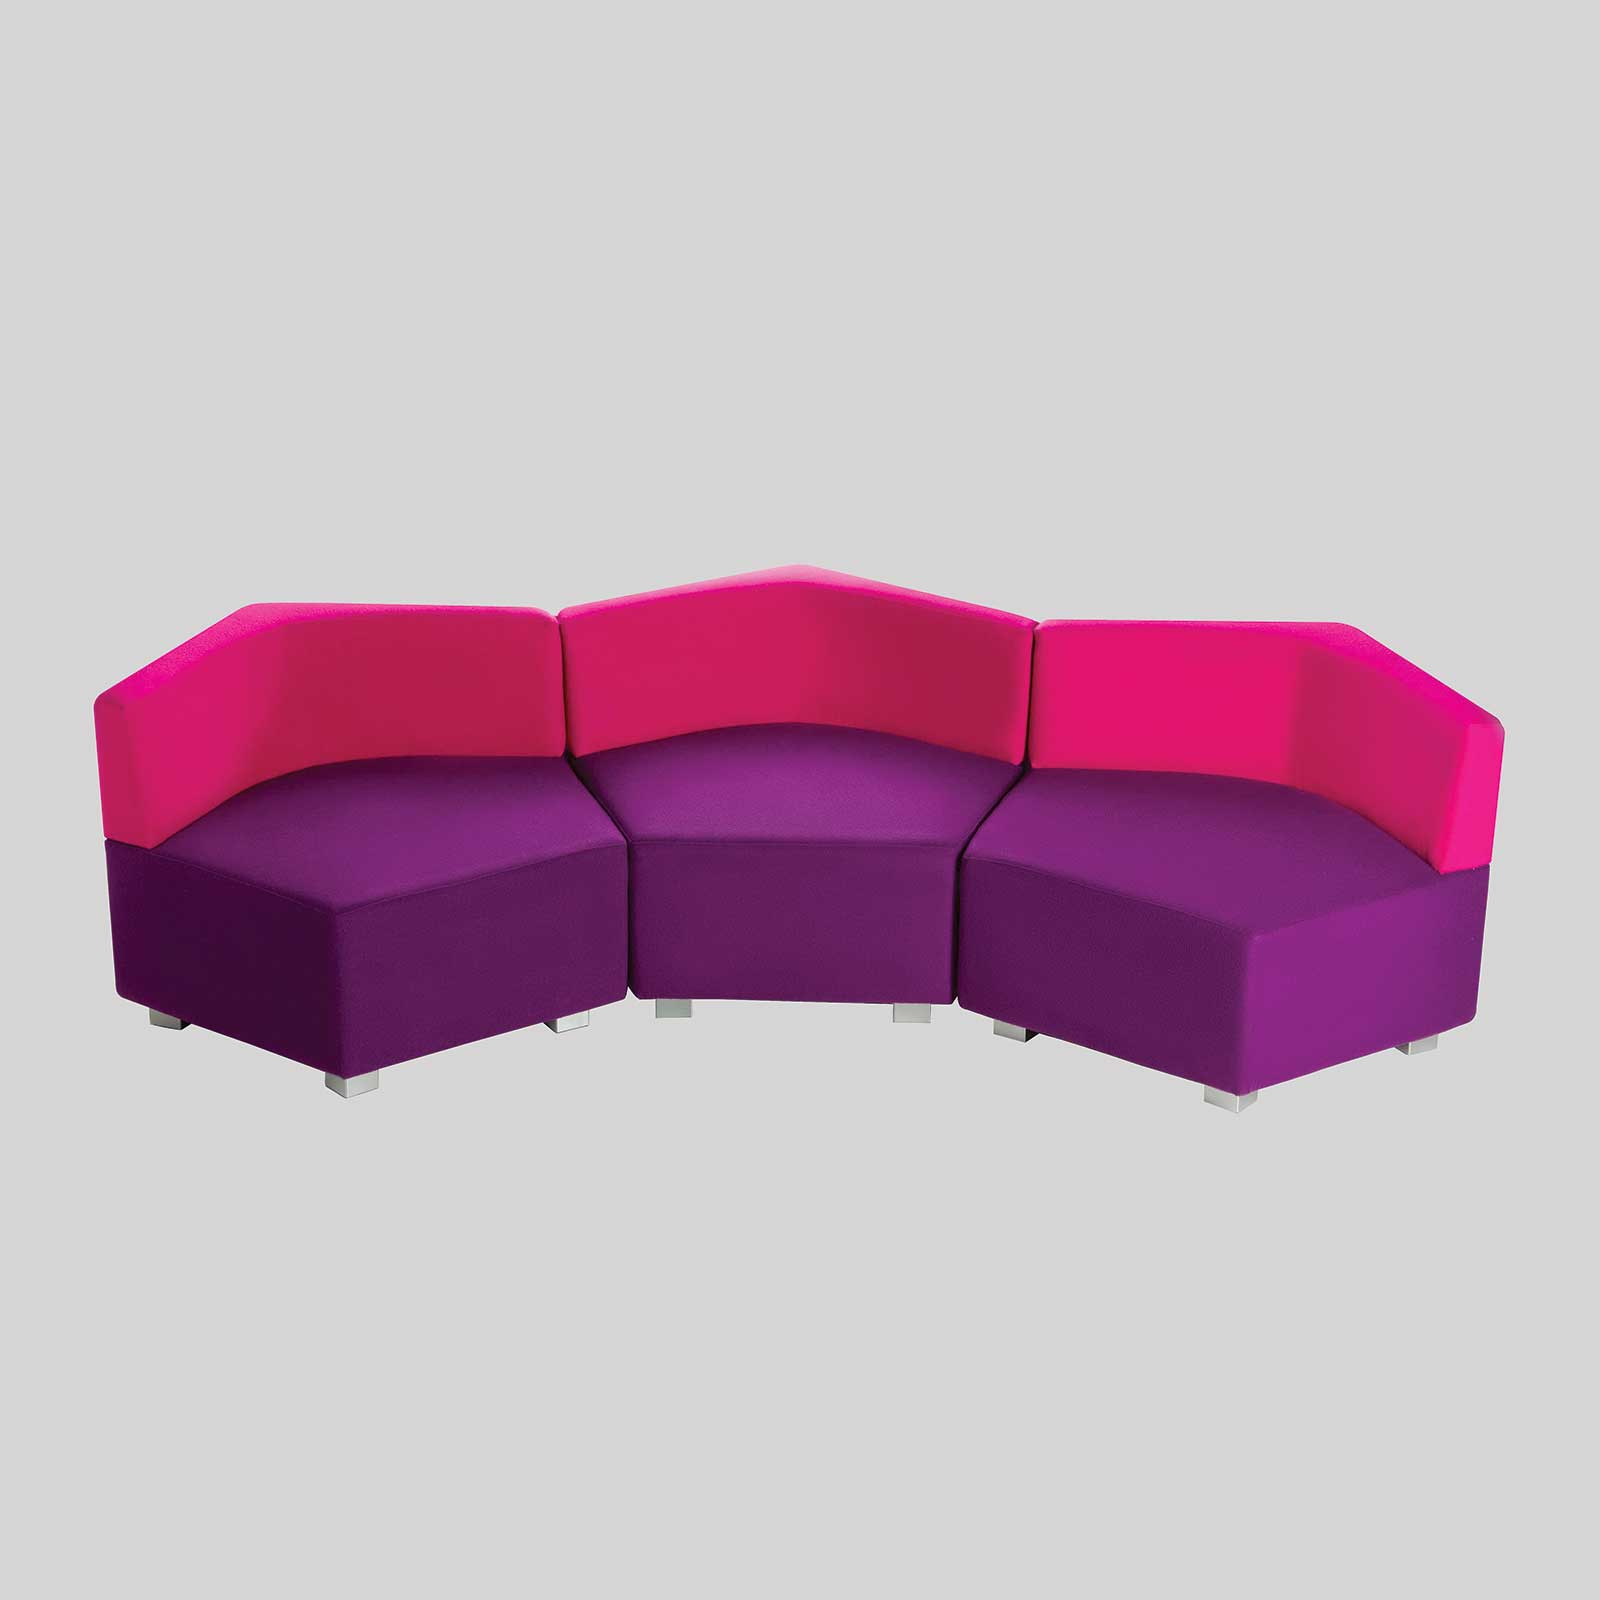 Lounge Chairs By Konfurb Star Concept Collections